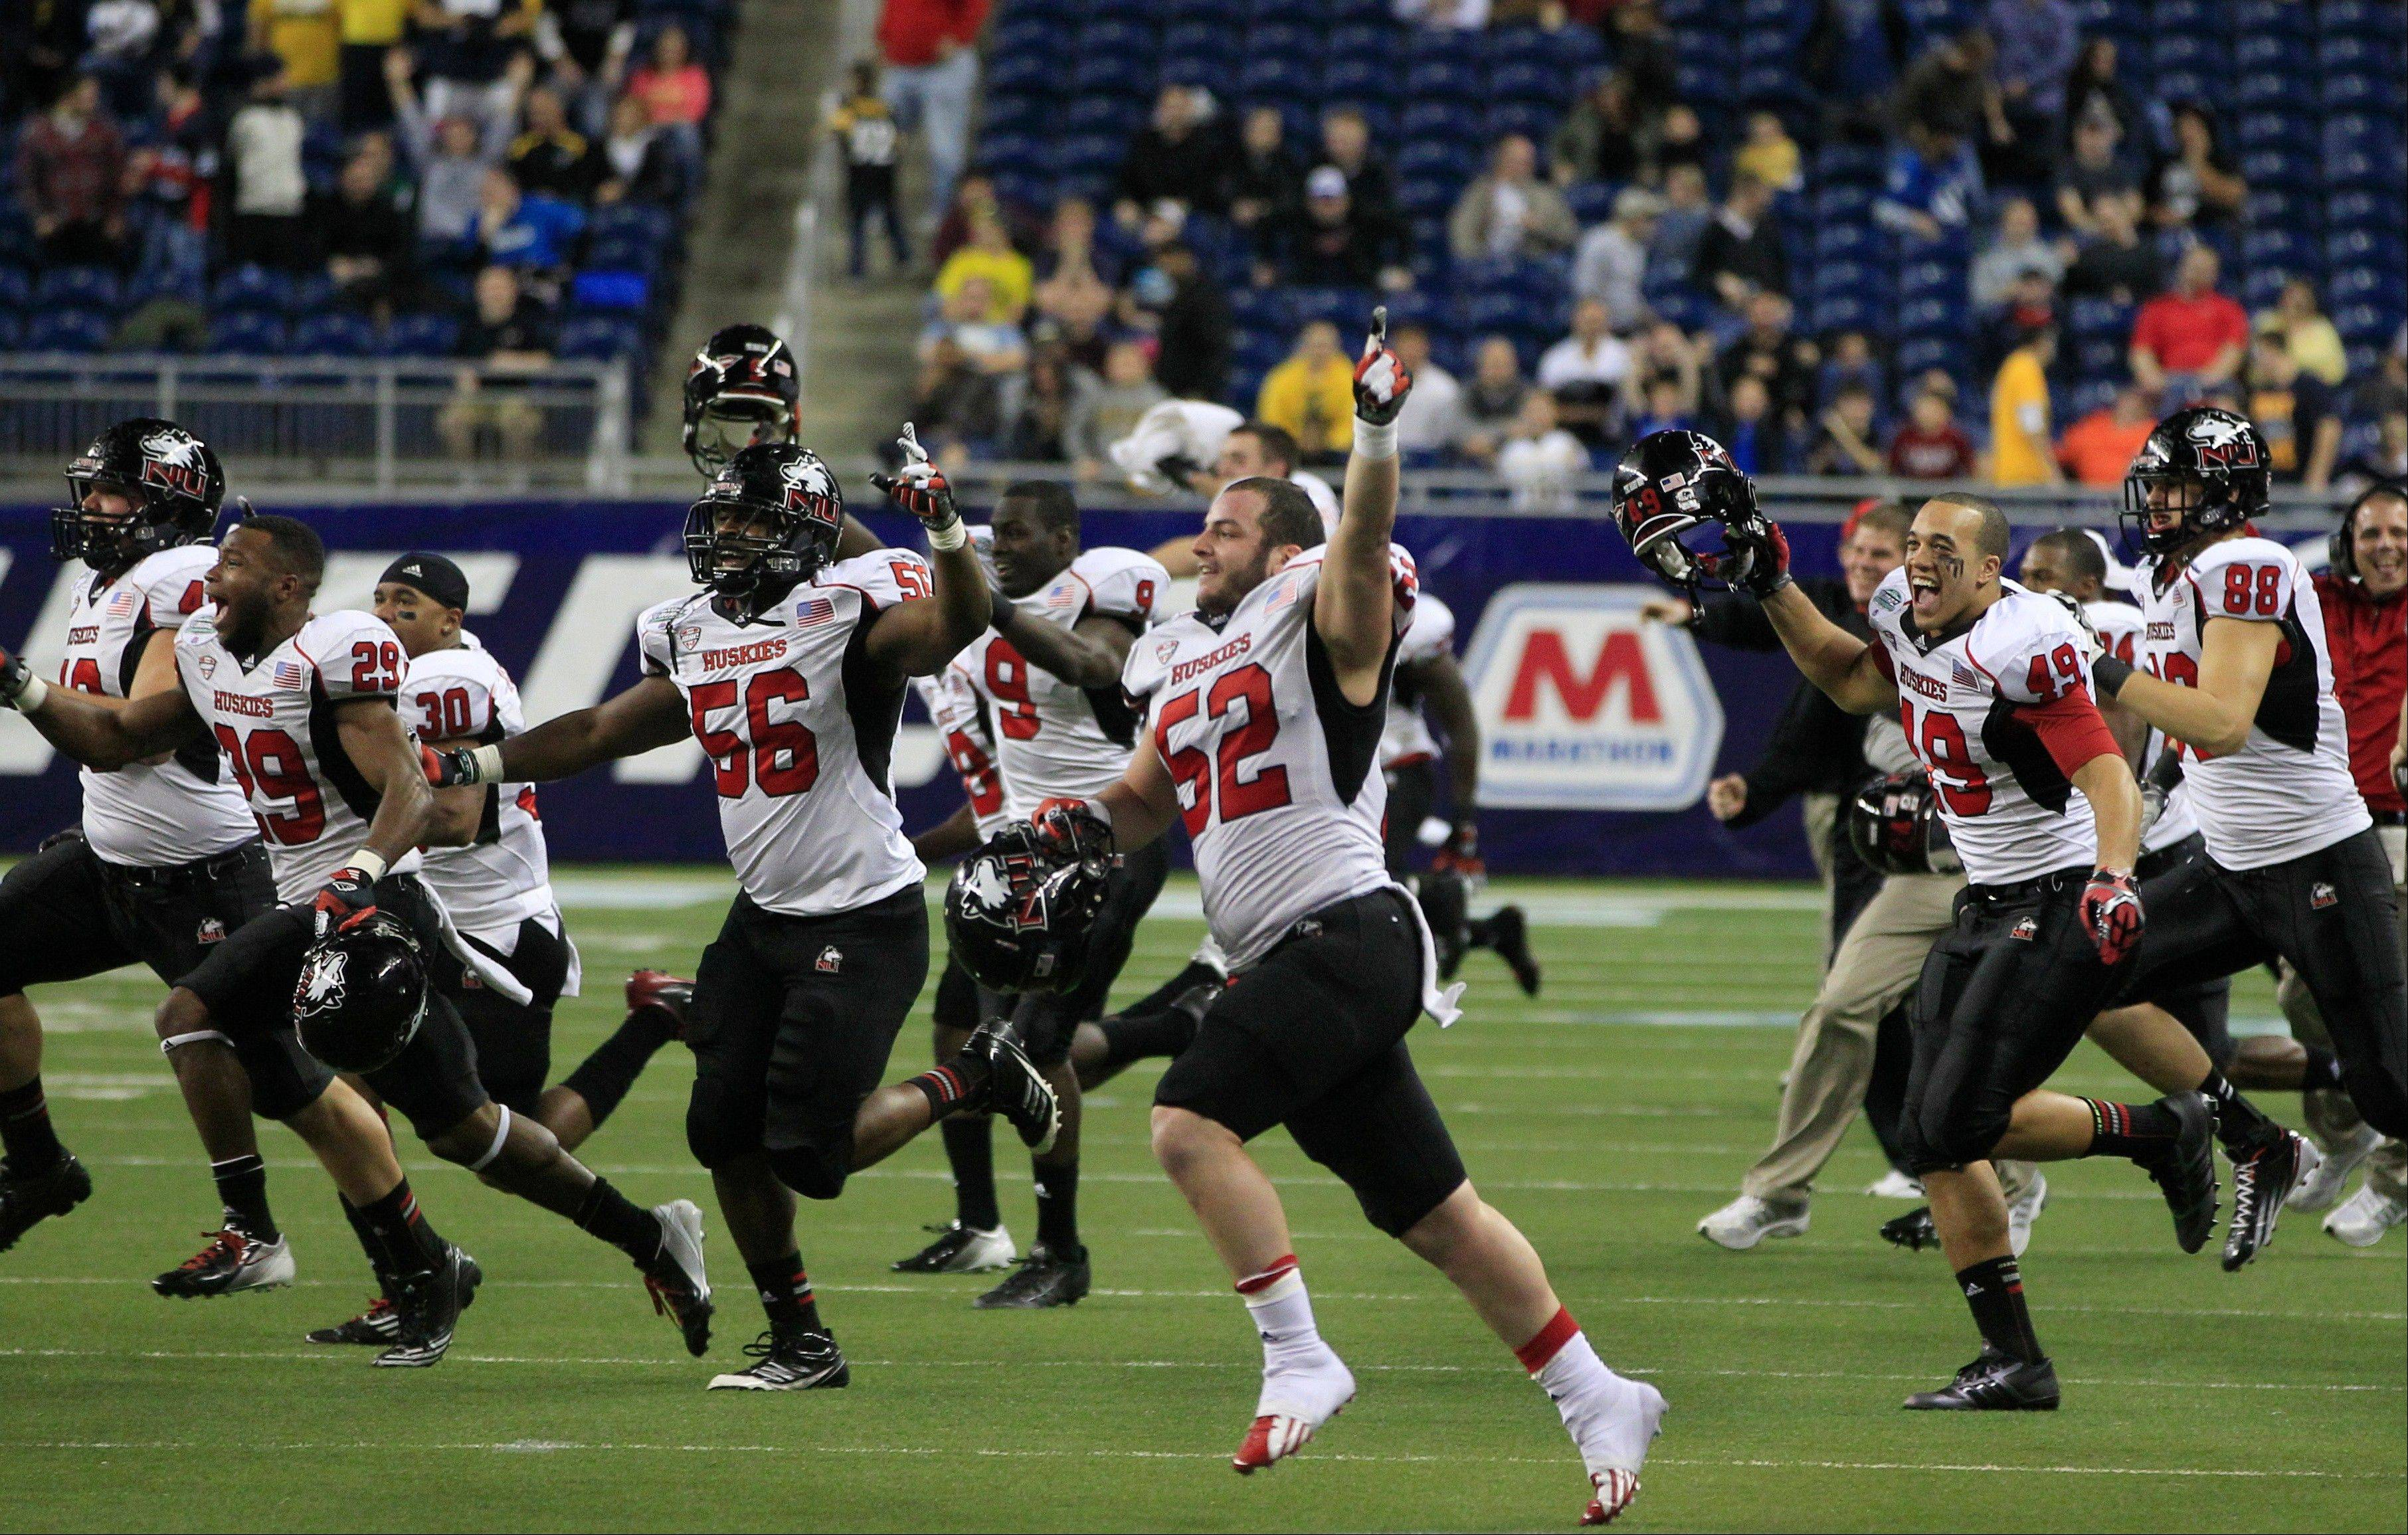 The Northern Illinois team rushes the field after their 44-37 double OT win Friday over Kent State.